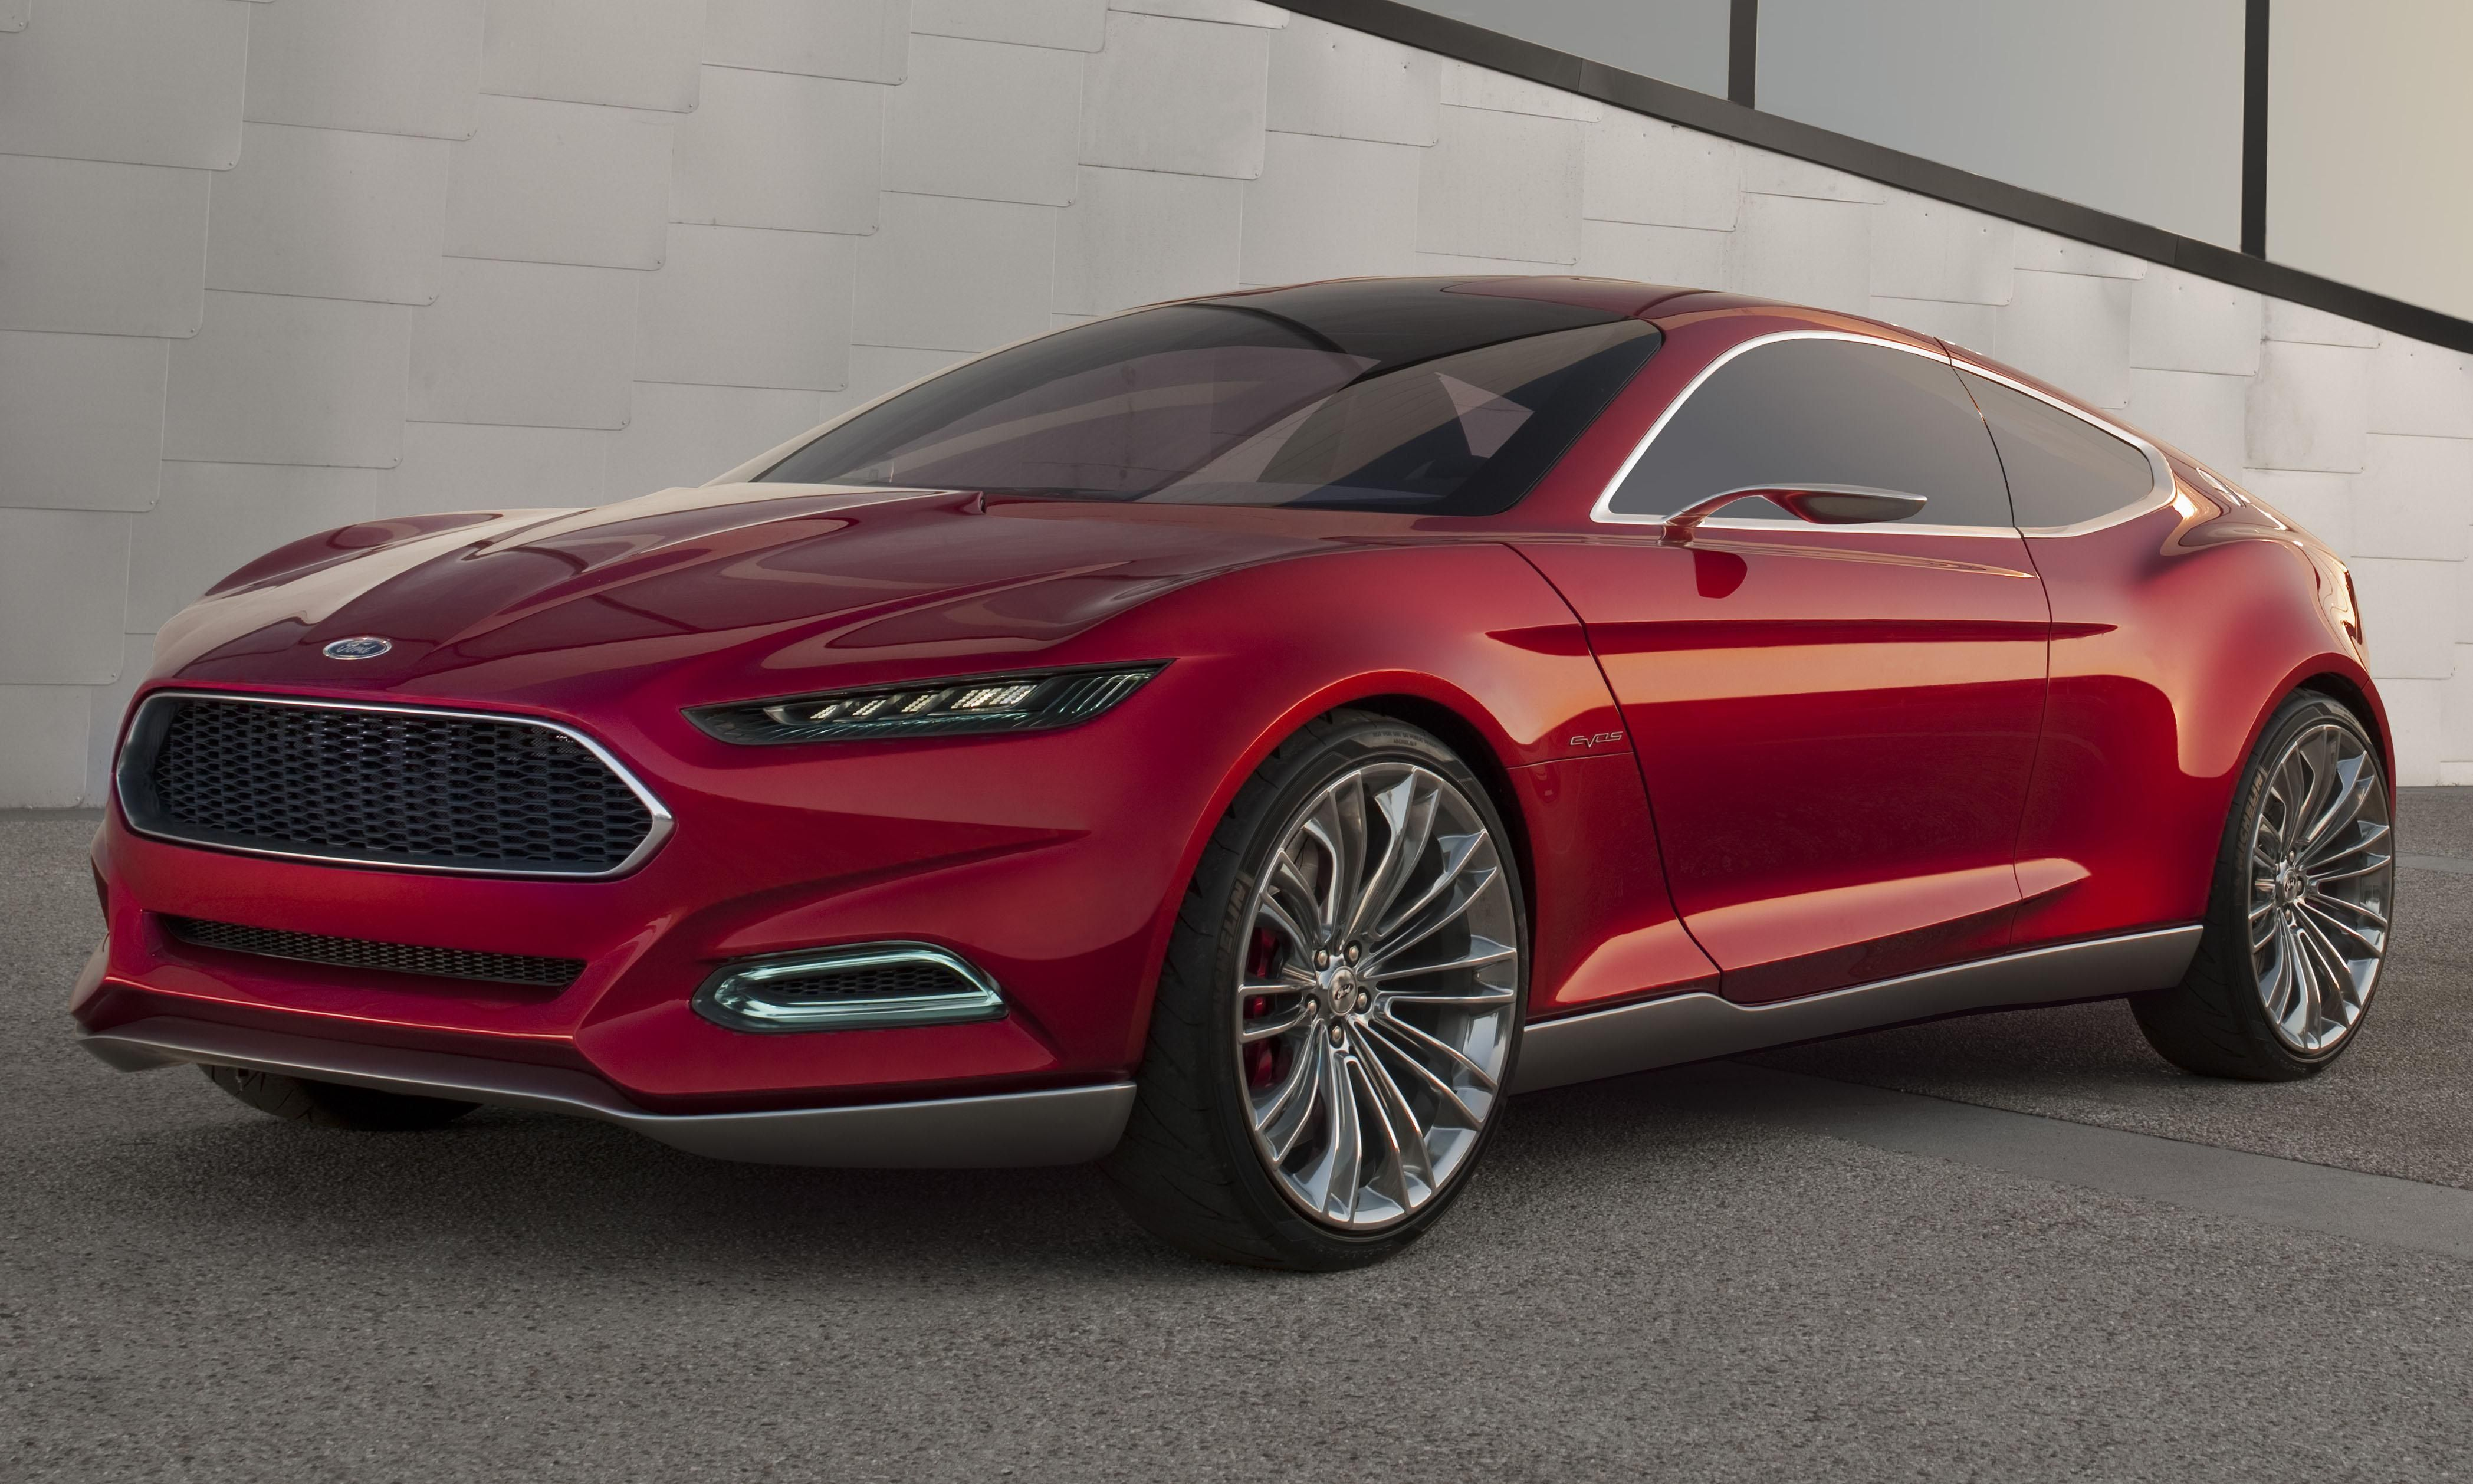 Mustangs The Next Generation Mustang Is Expected To Pull Many Design Elements